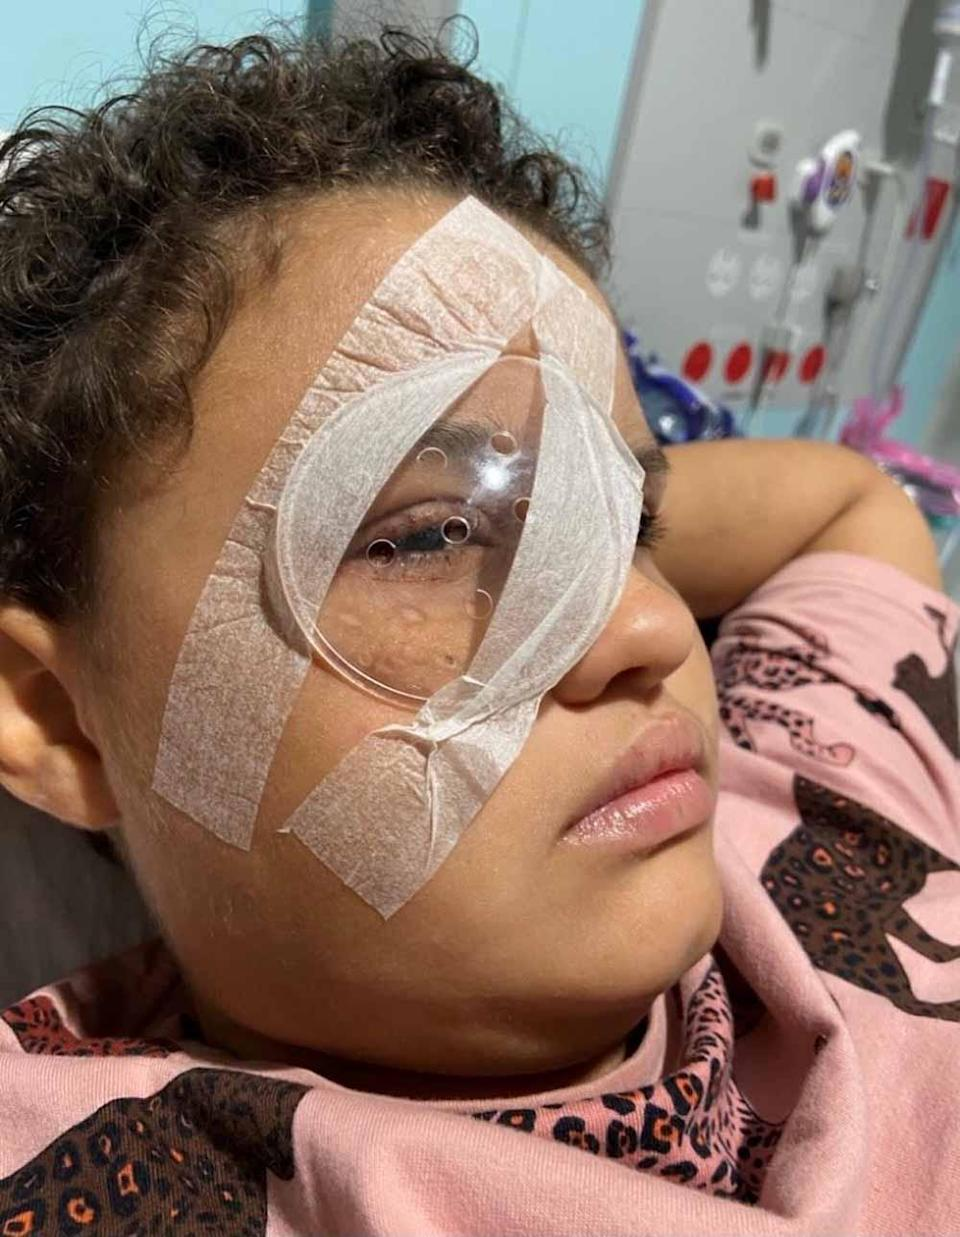 Scarlet healing from her eye operation. PA REAL LIFE COLLECT